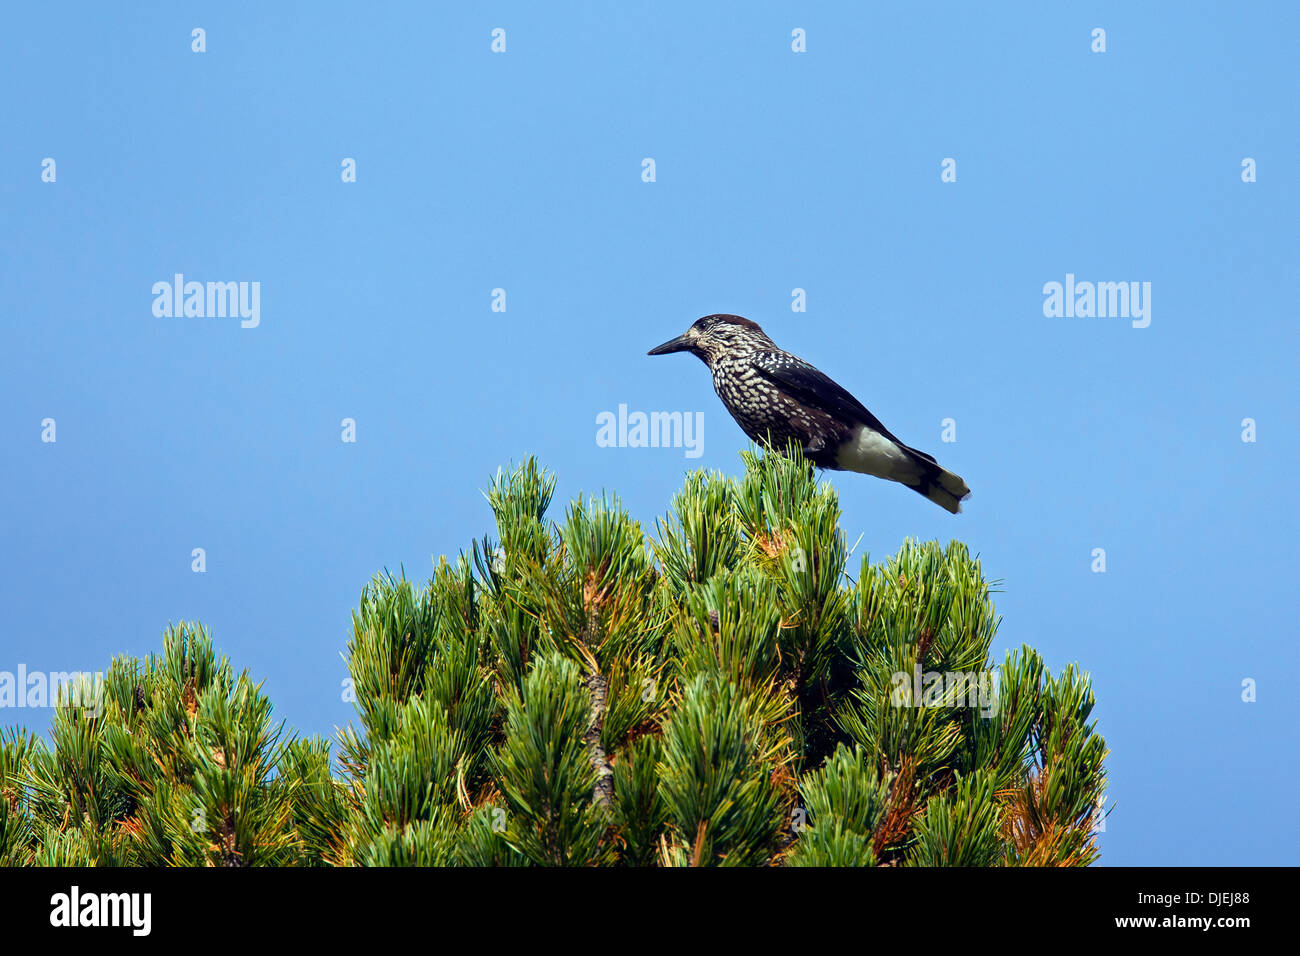 Spotted nutcracker / Eurasian nutcracker (Nucifraga caryocatactes) perched in treetop of spruce tree in coniferous forest, Alps - Stock Image